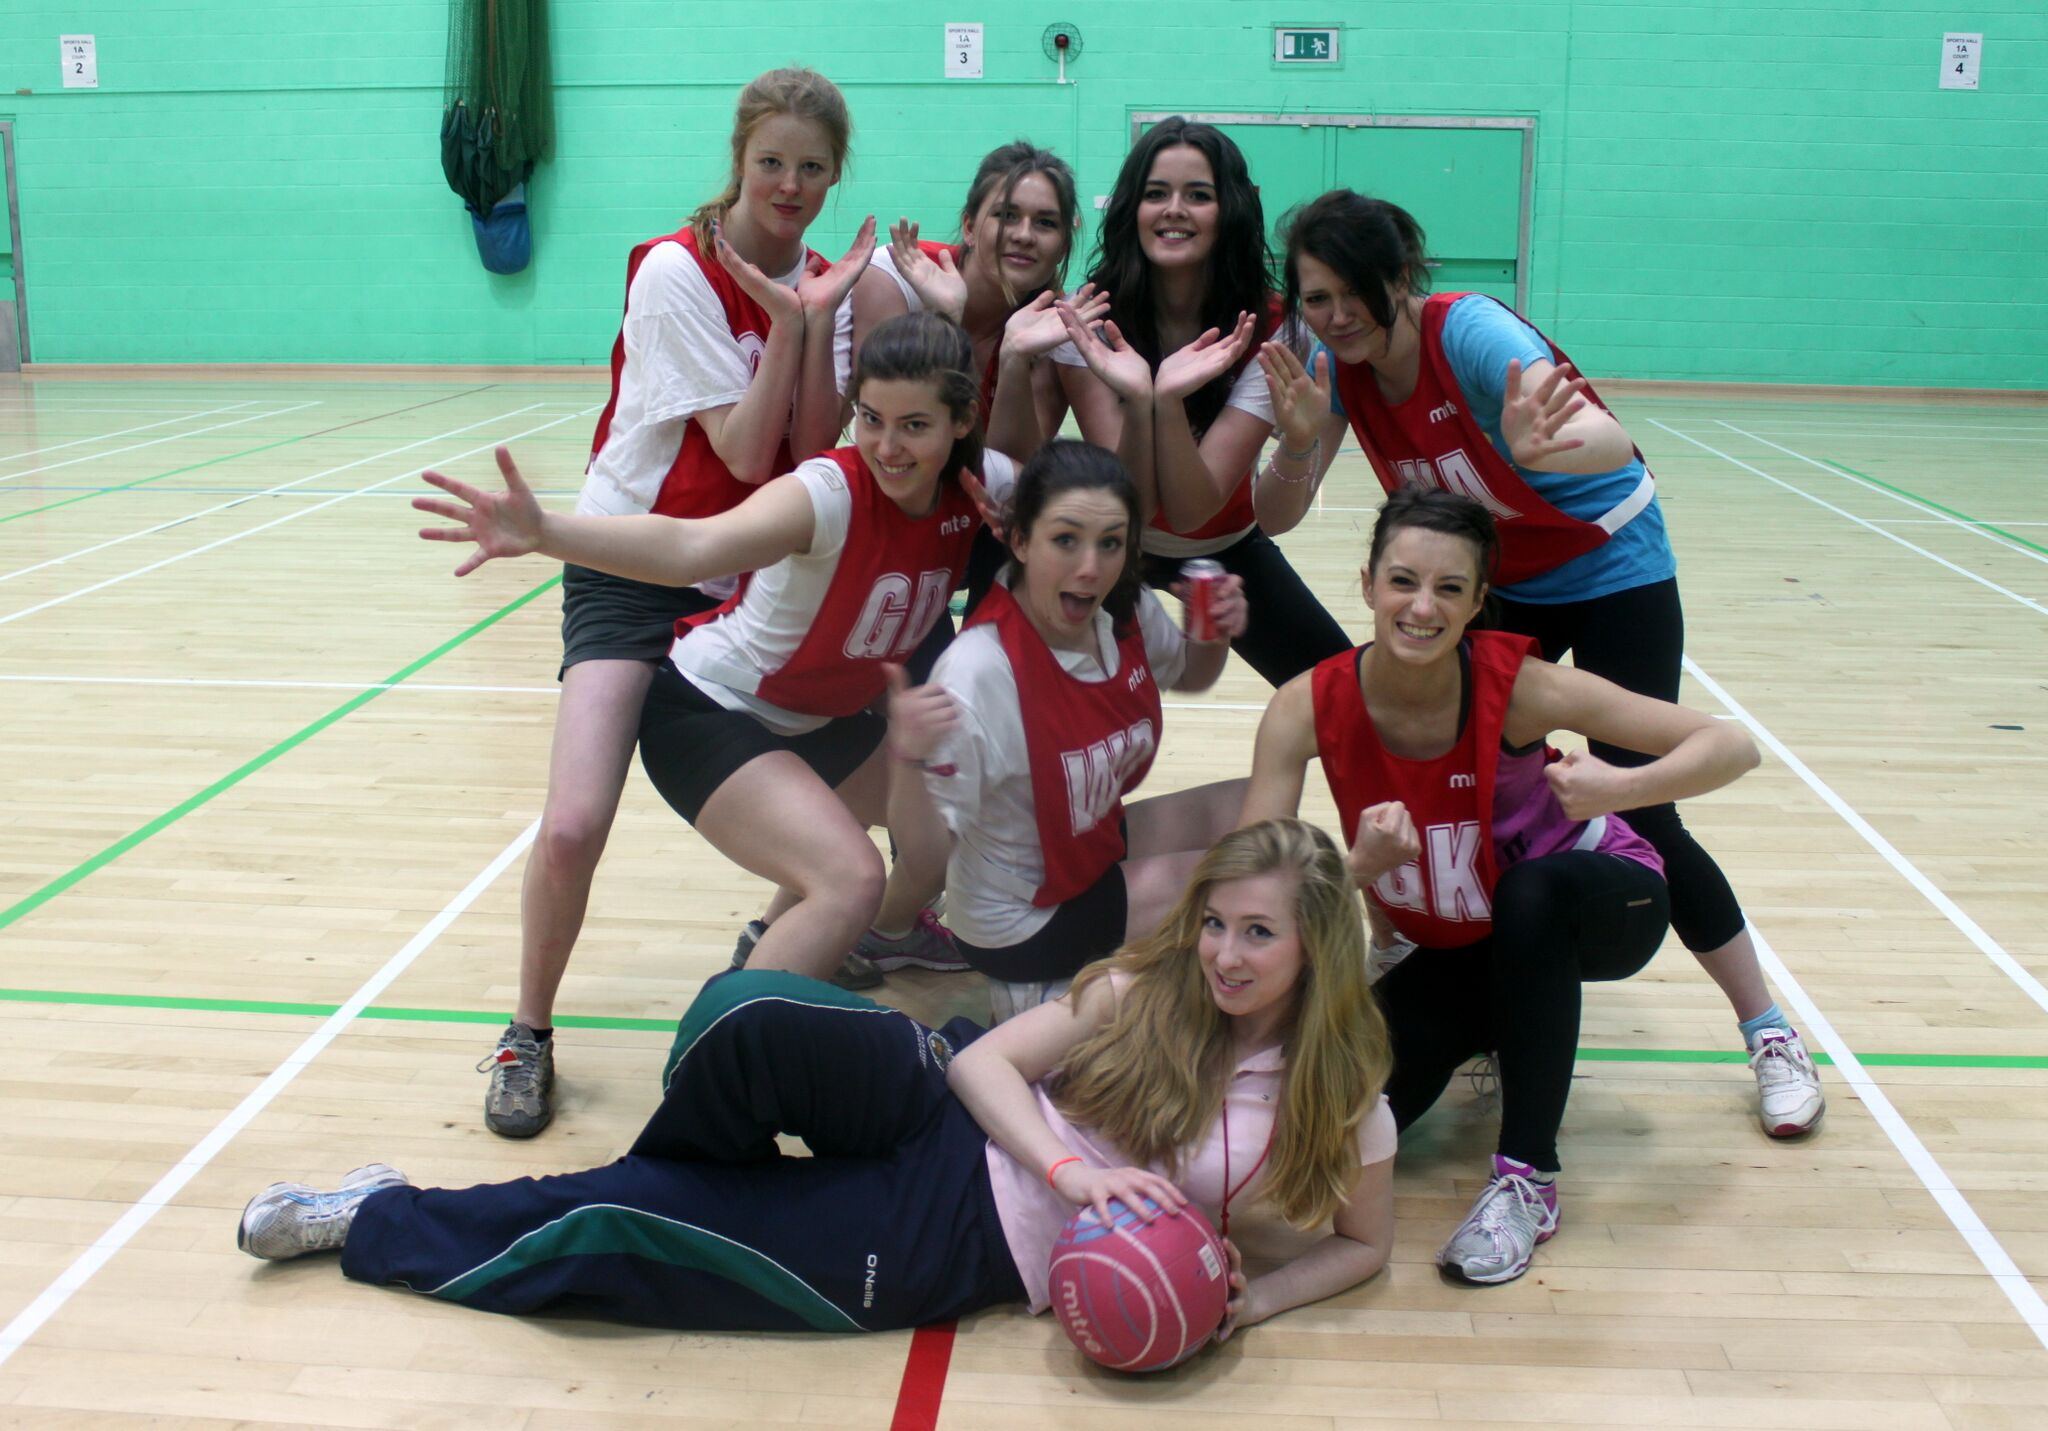 GIRLS NETBALL TEAM 2013